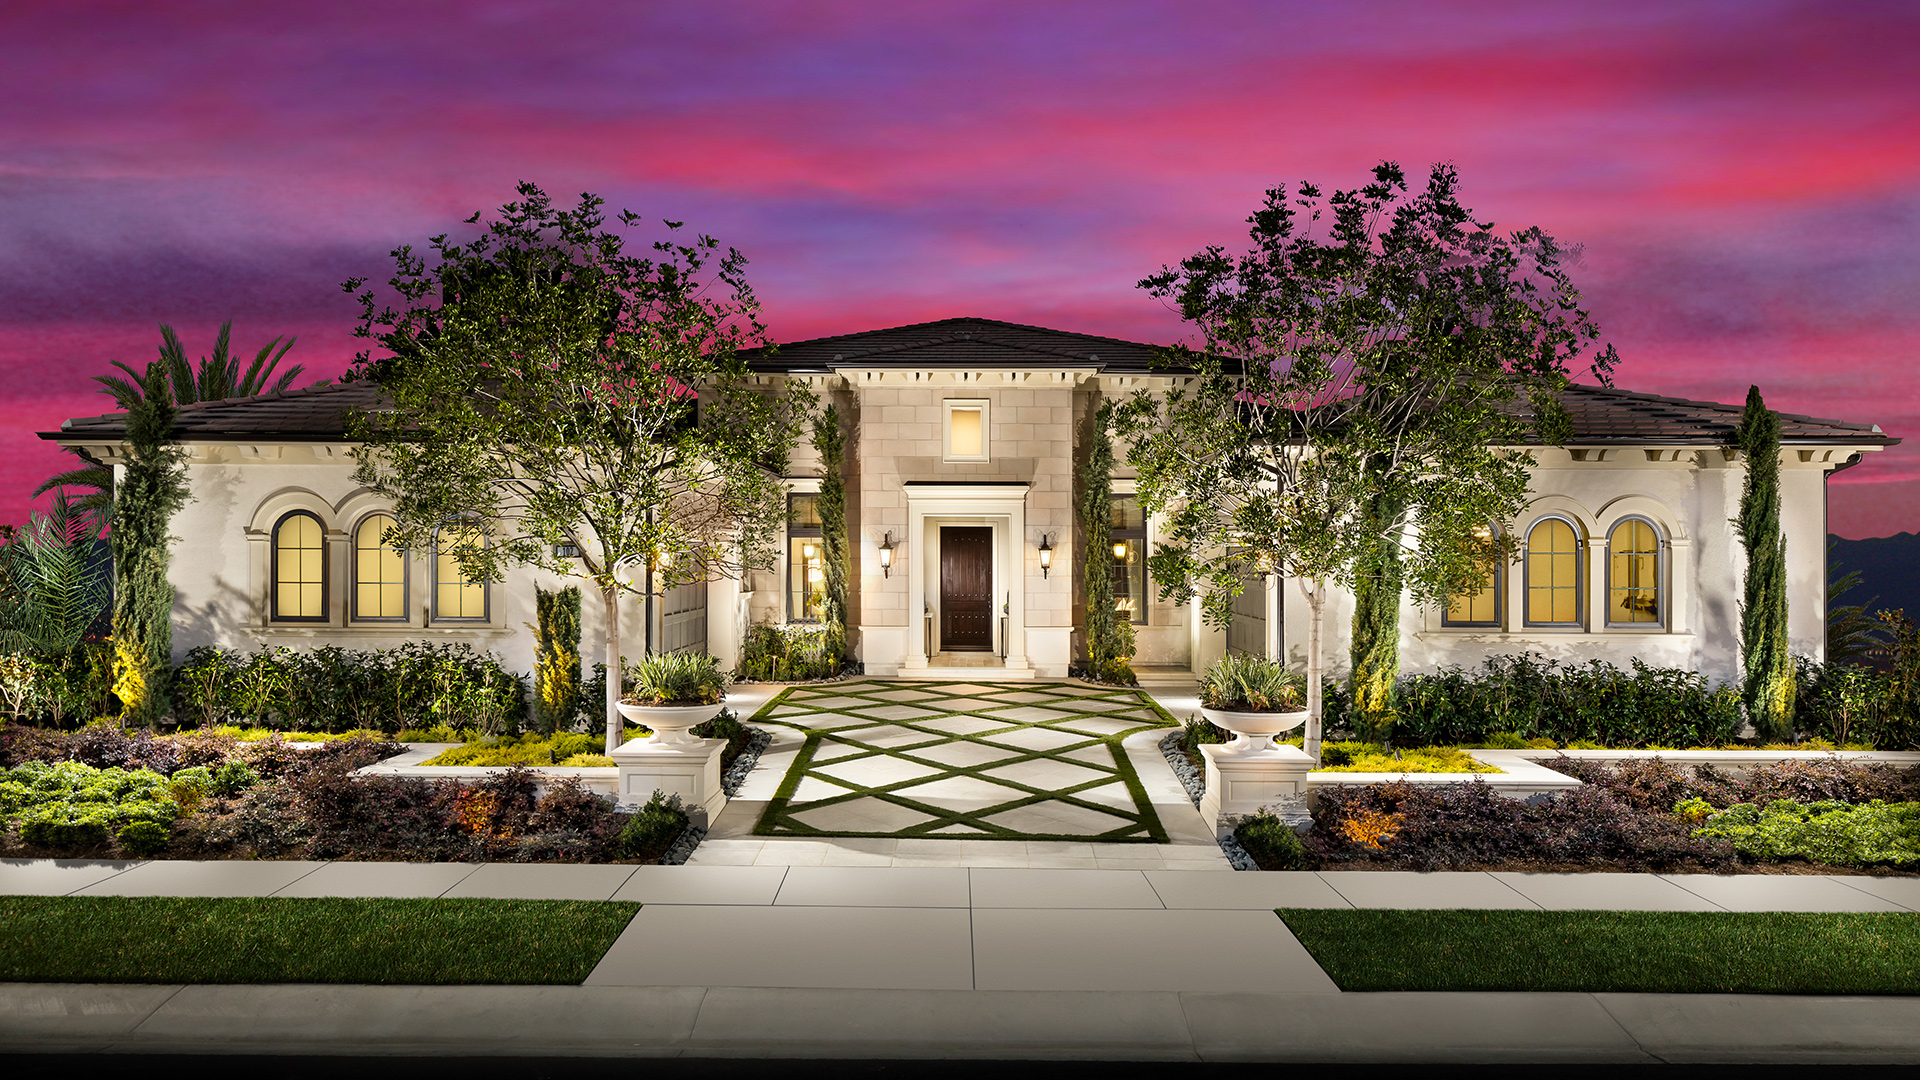 Estancia at yorba linda offers three single story home designs to choose from